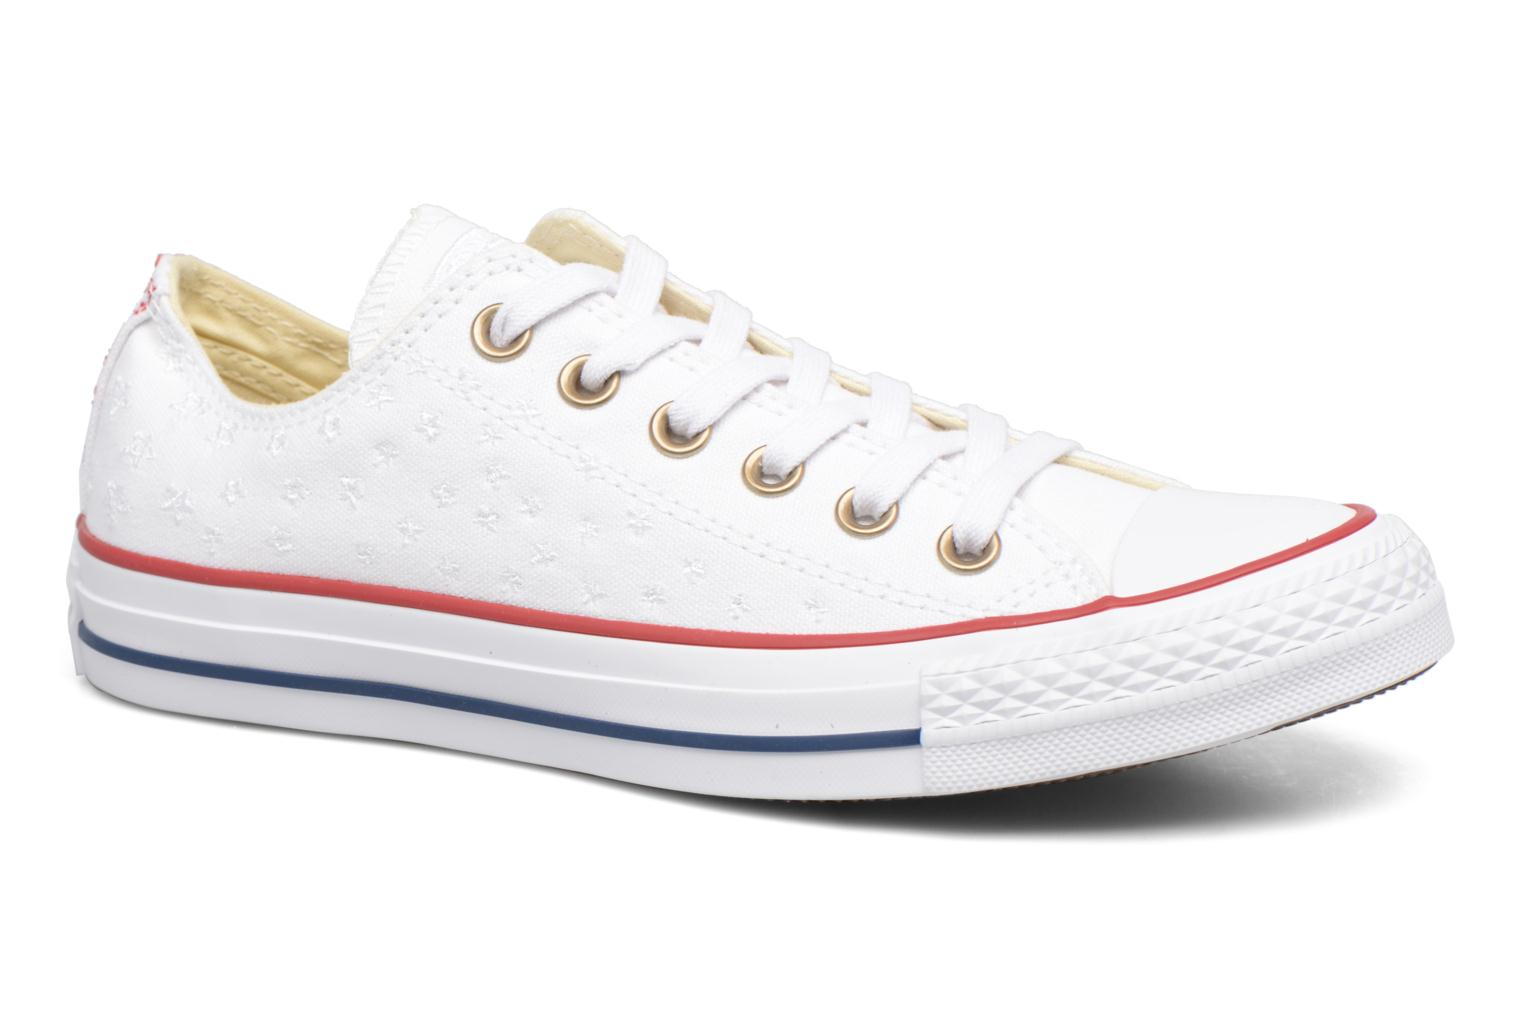 Marques Chaussure femme Converse femme Chuck Taylor All Star Ox Americana Embroidery WhiteCasinoWhite